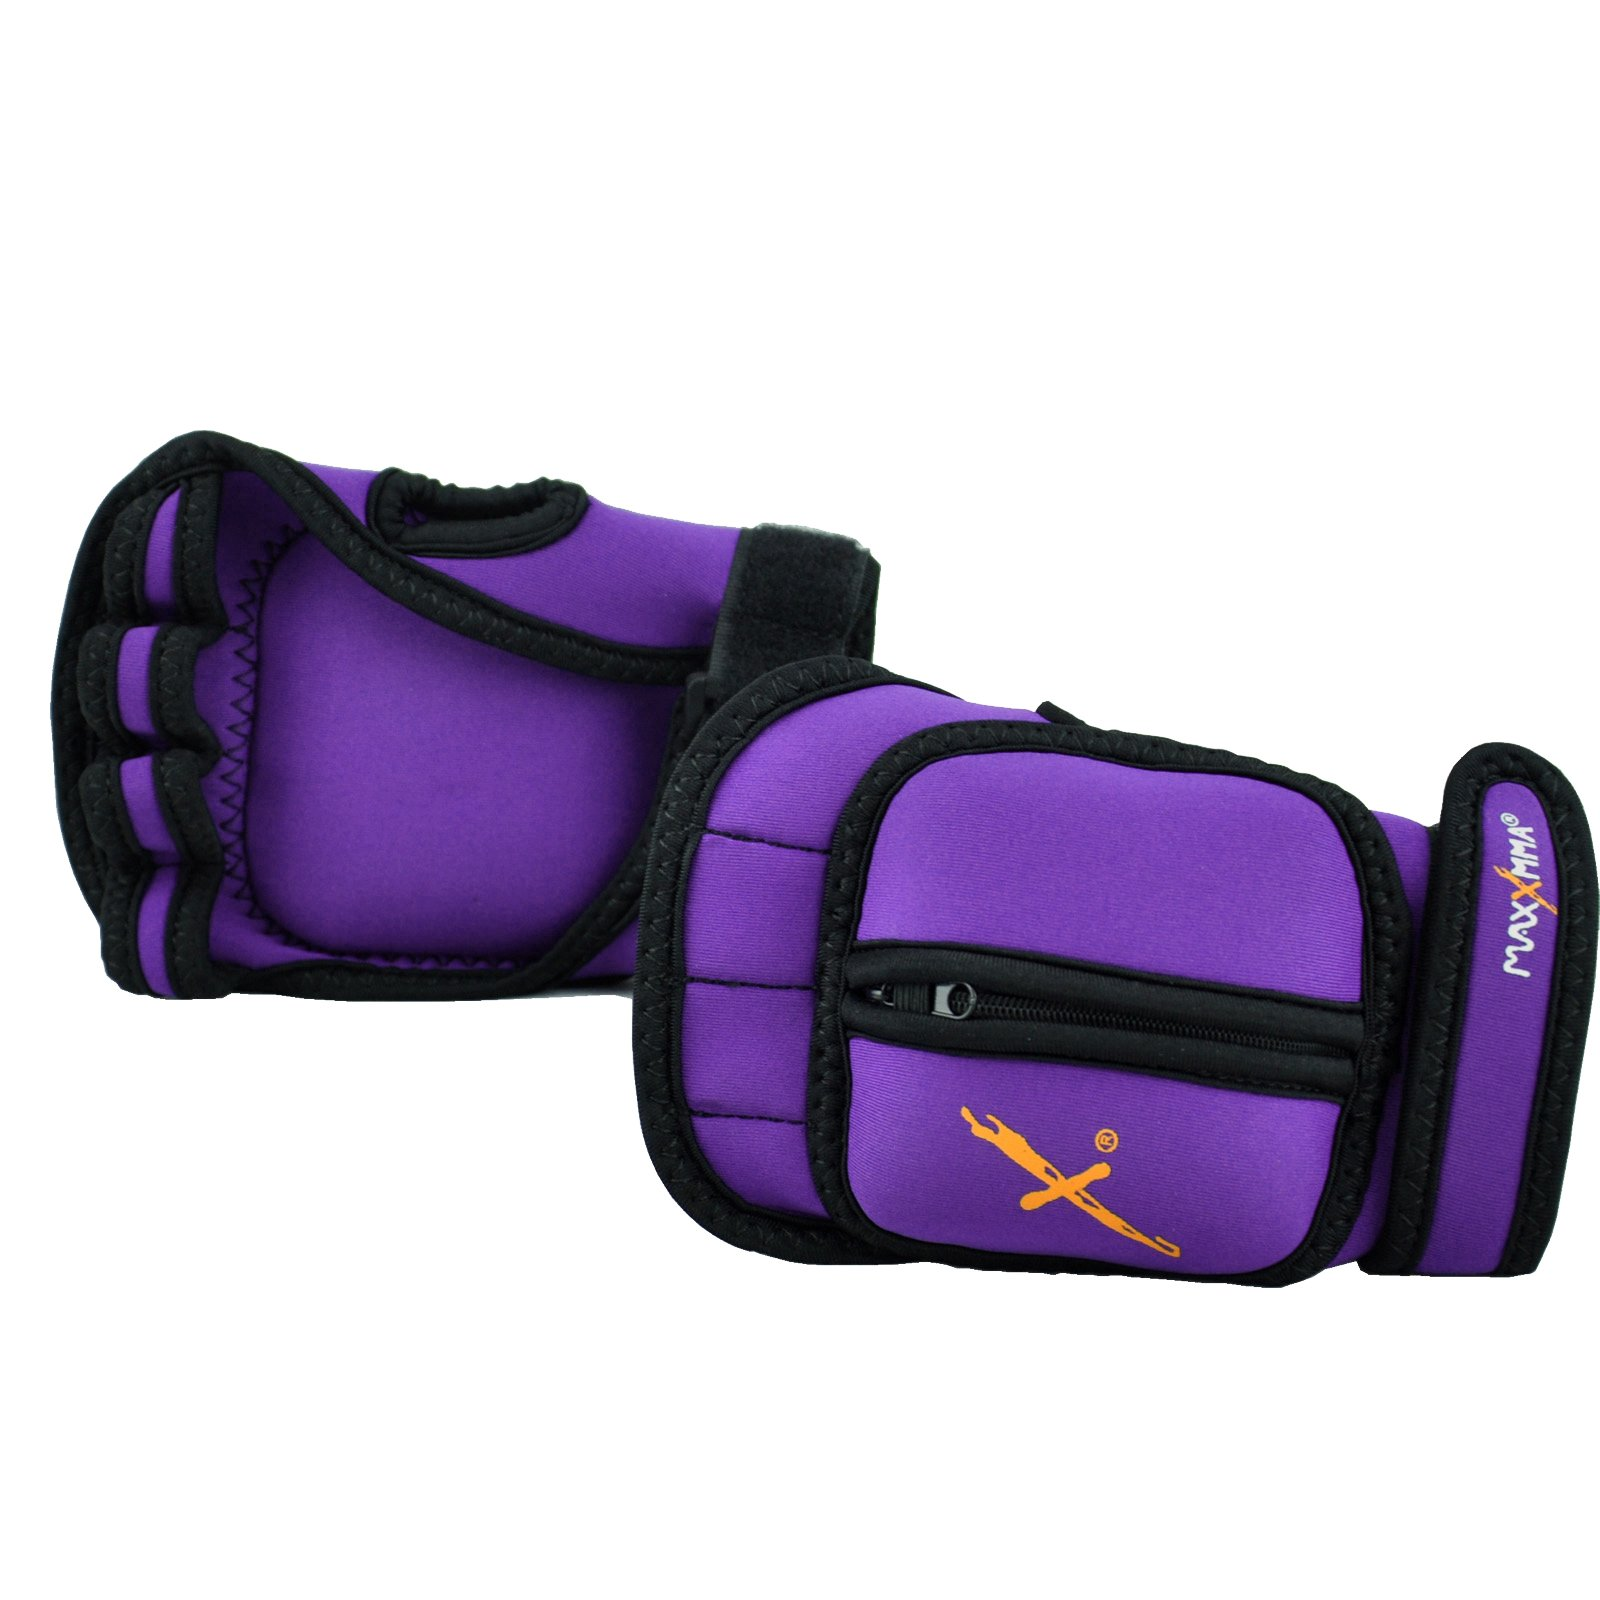 MaxxMMA Adjustable Weighted Gloves Removable